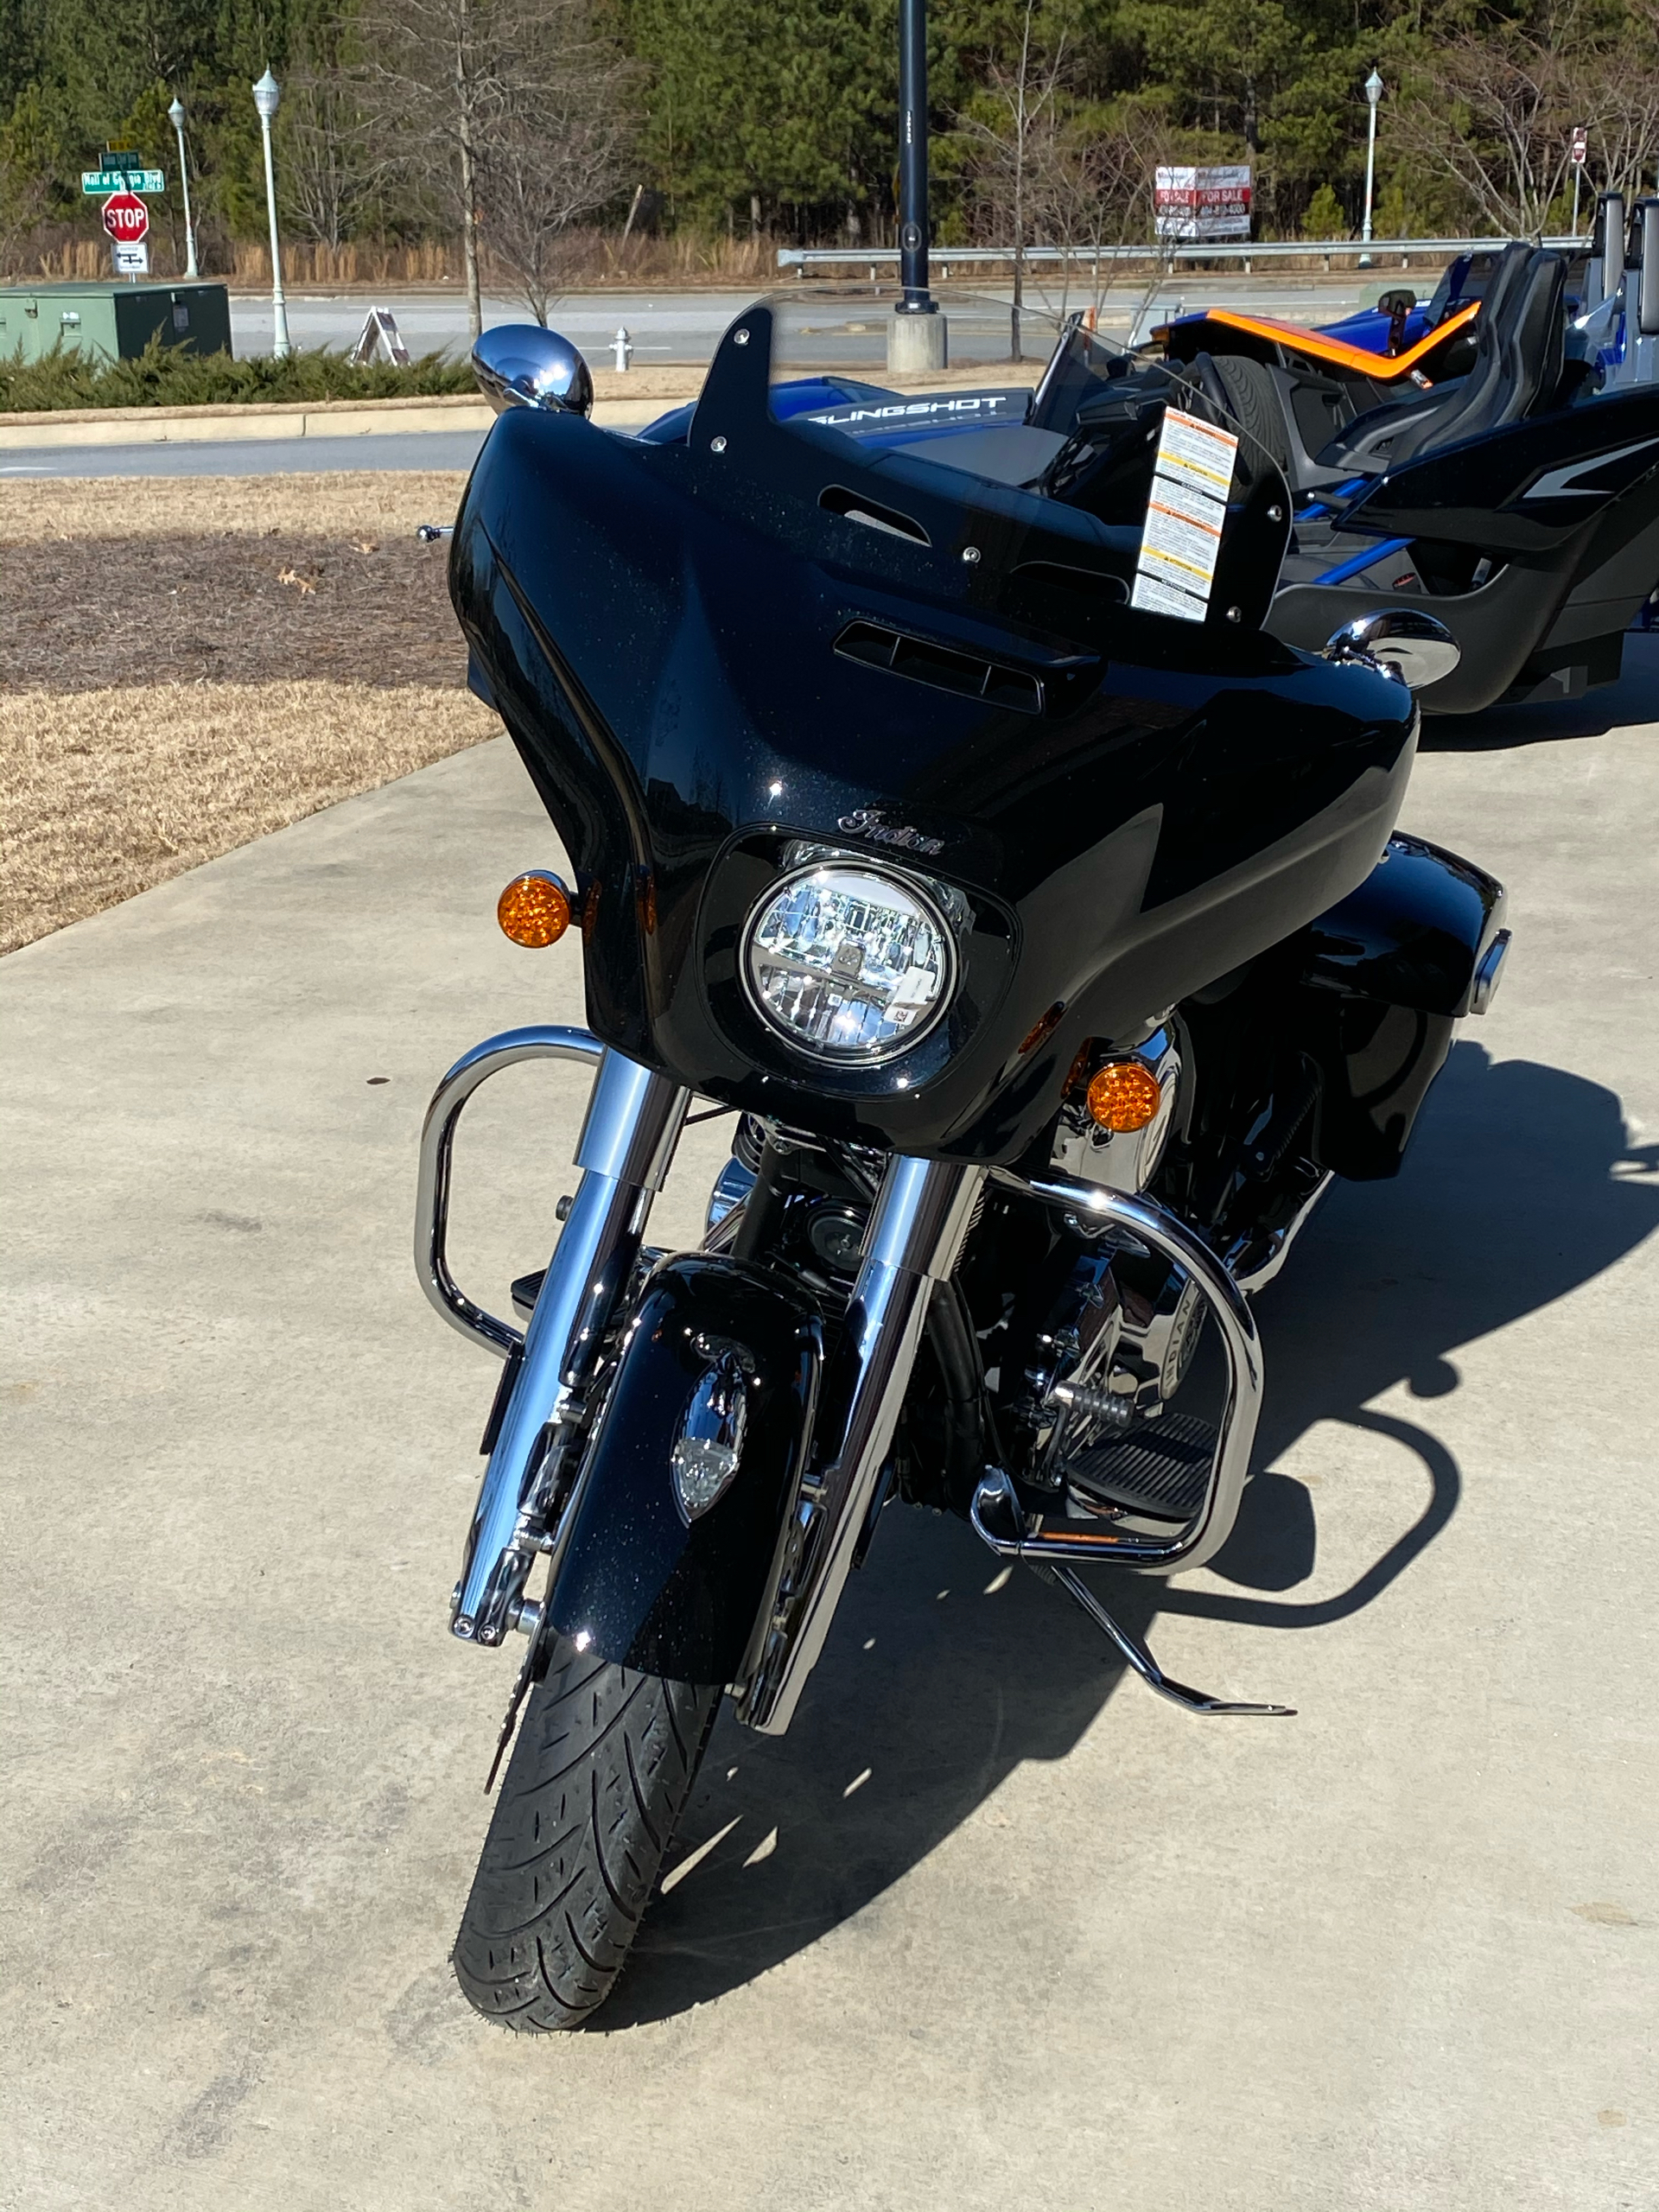 2021 Indian Chieftain® Limited in Buford, Georgia - Photo 2